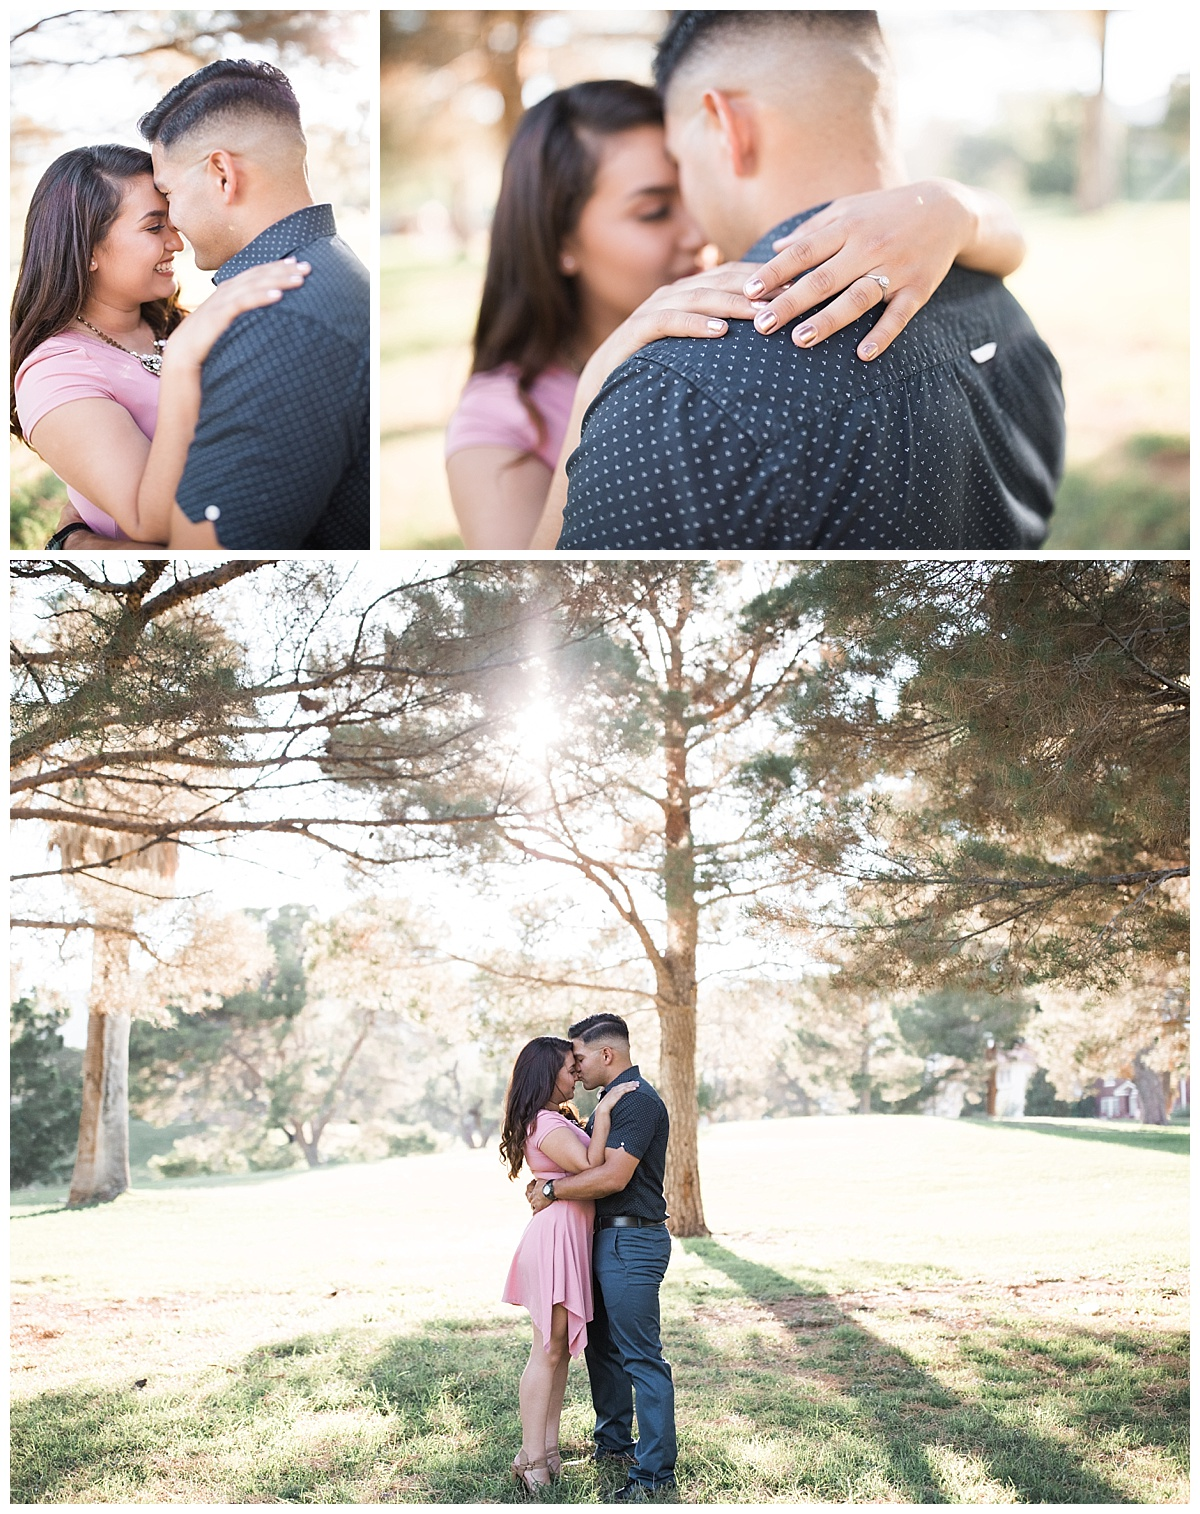 el paso engagement photography, el paso wedding photography